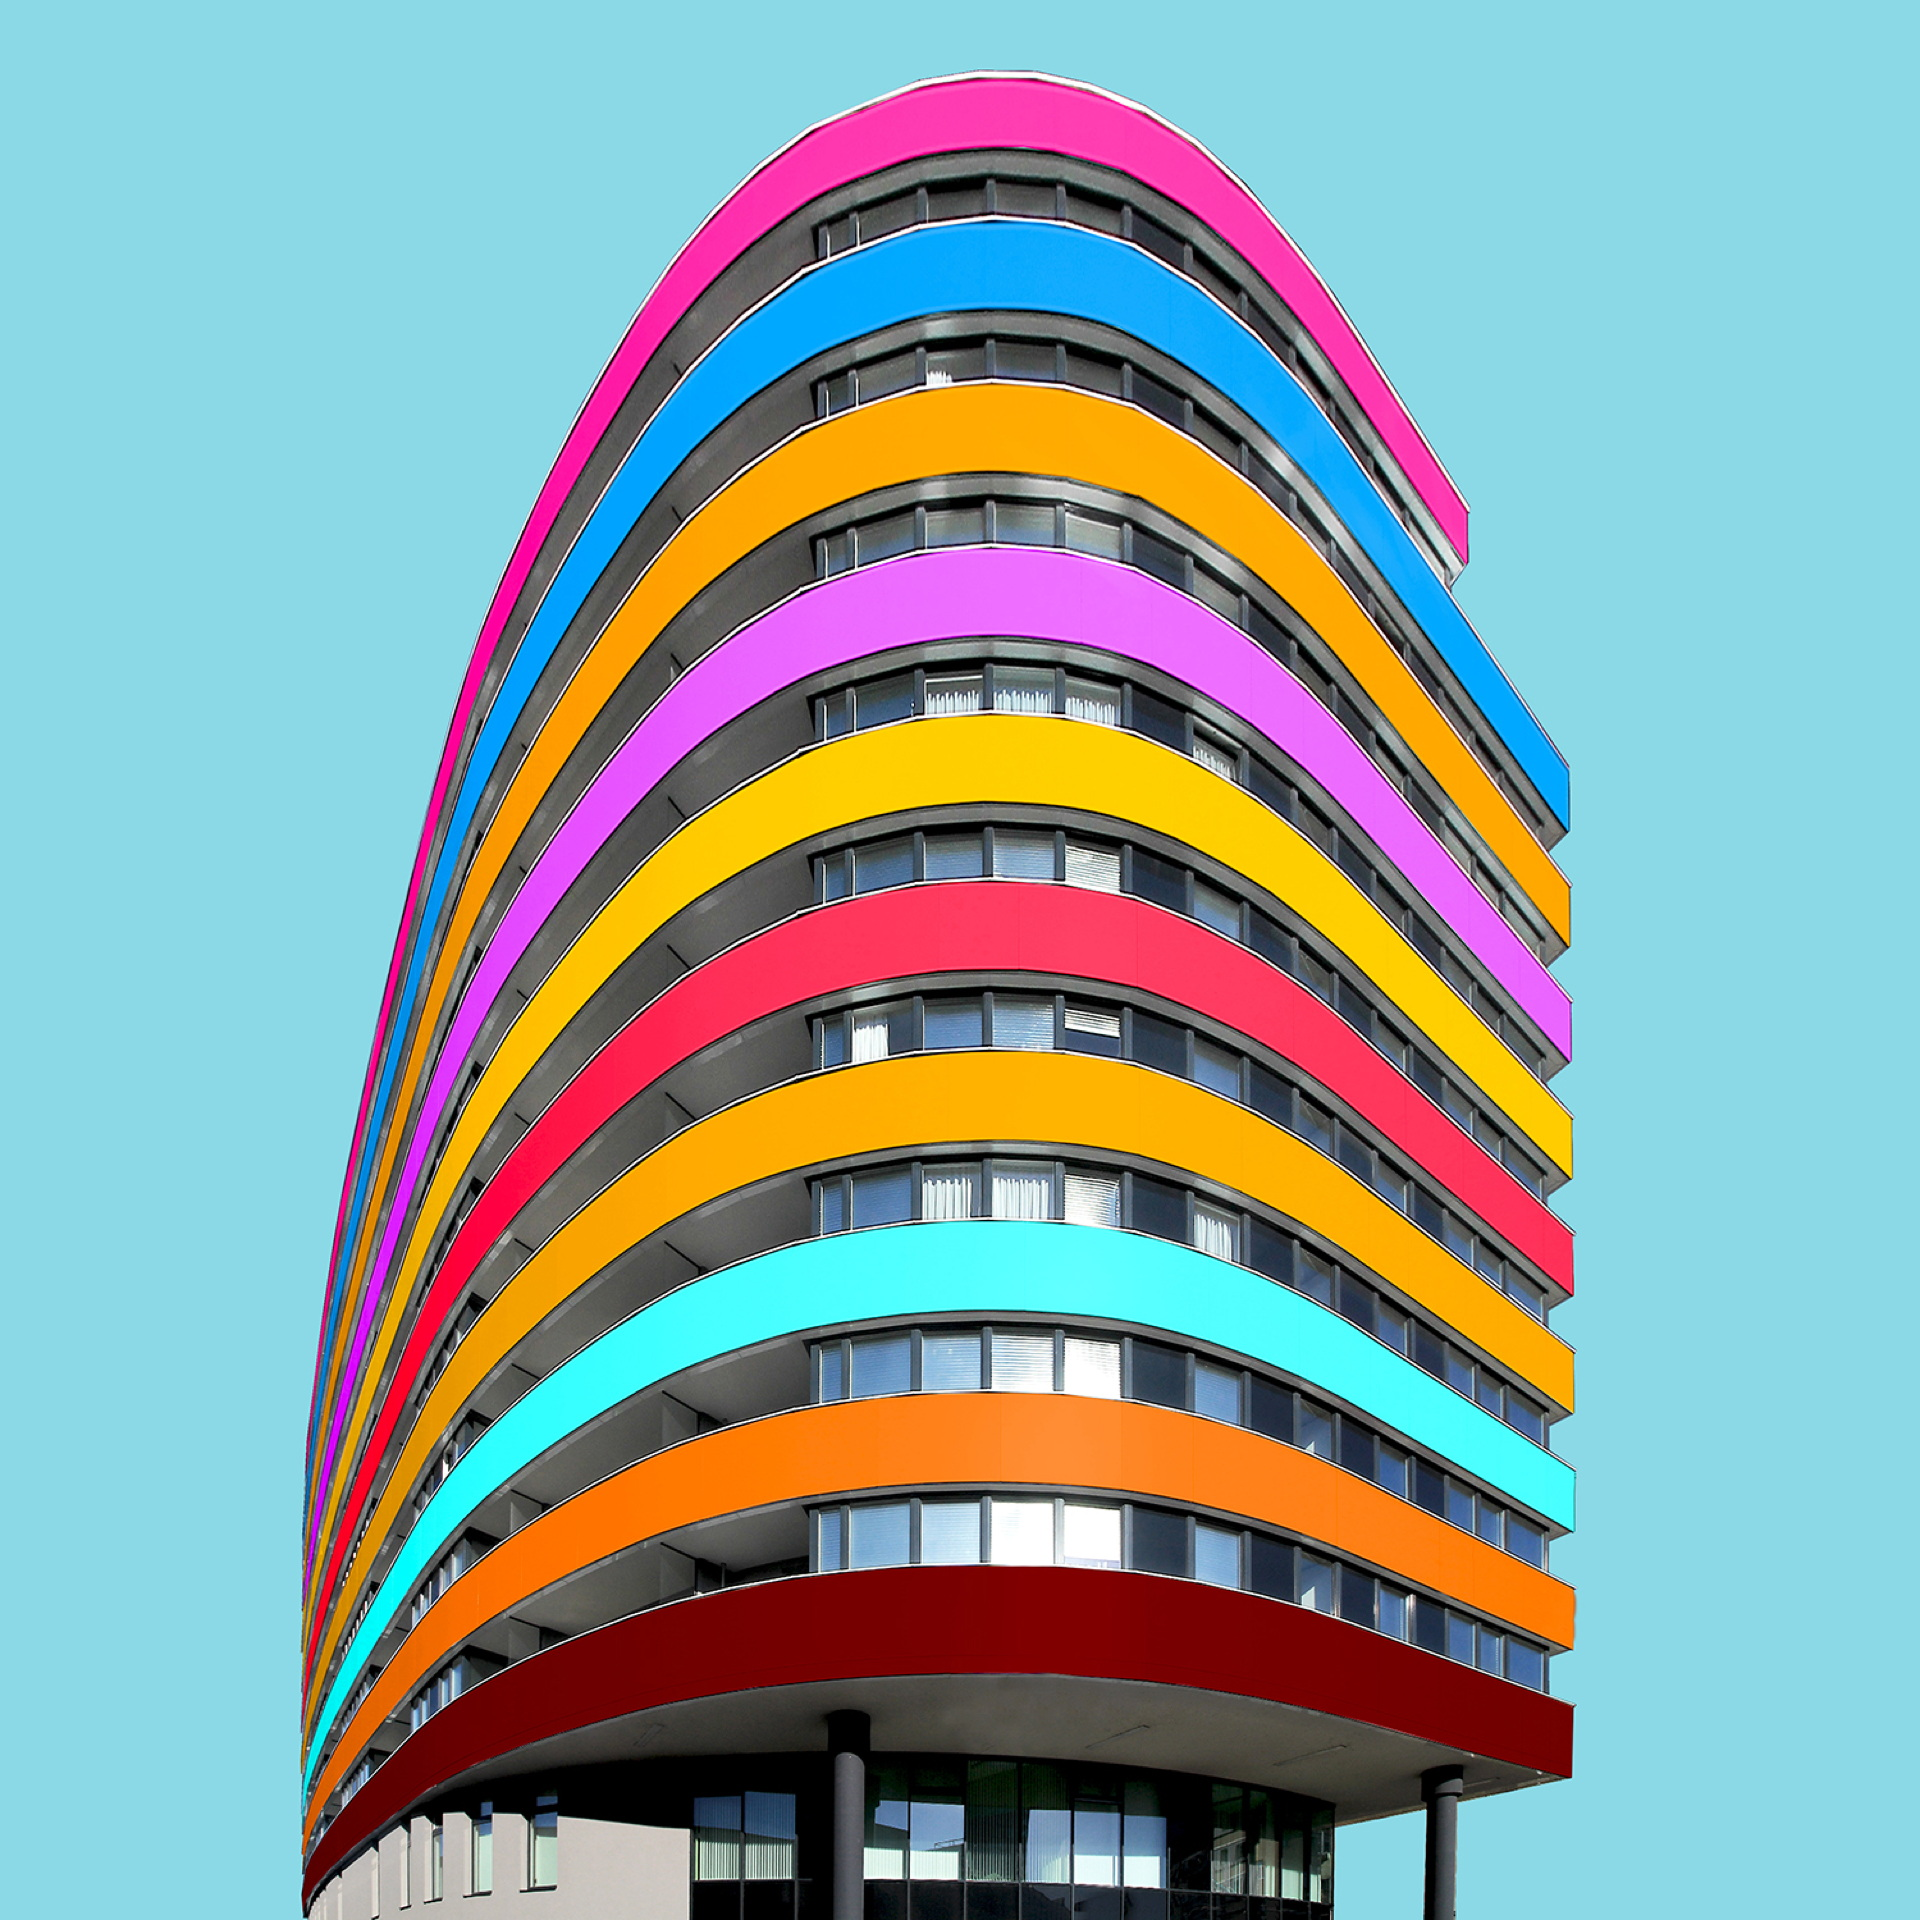 Paul Eis: colouring architecture